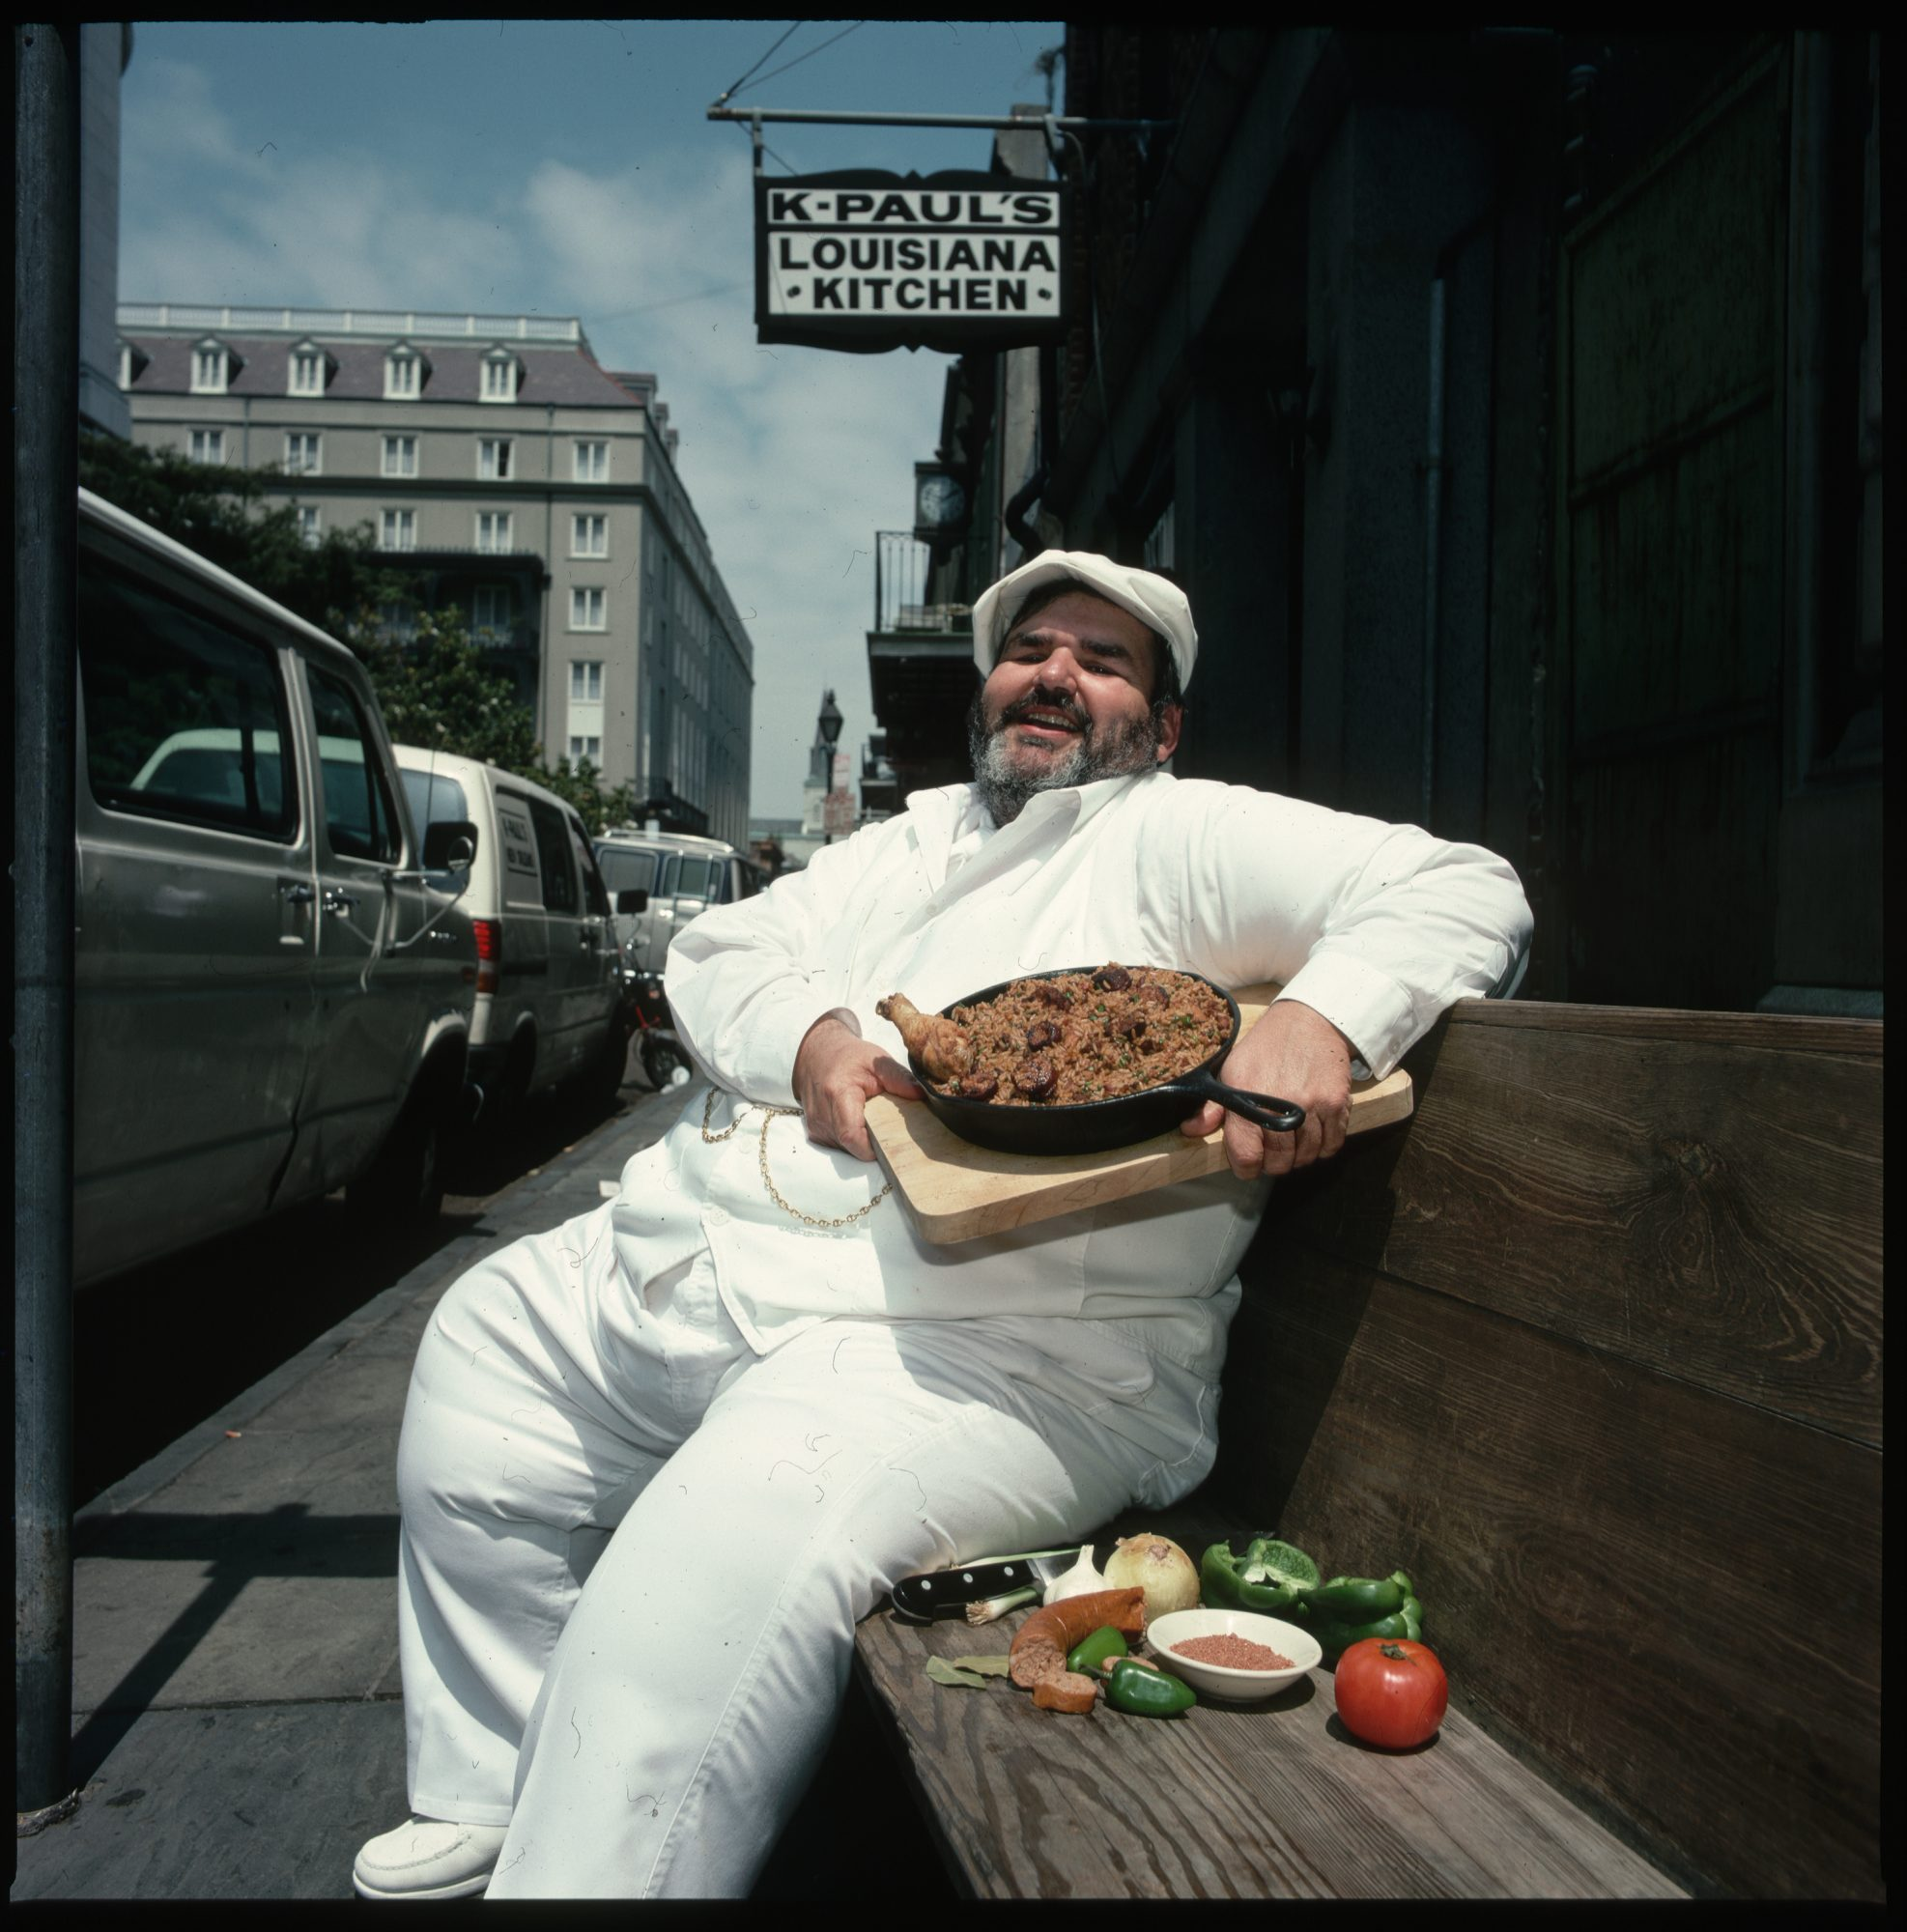 Chef Paul Prudhomme With Jambalaya Outside K-Paul's